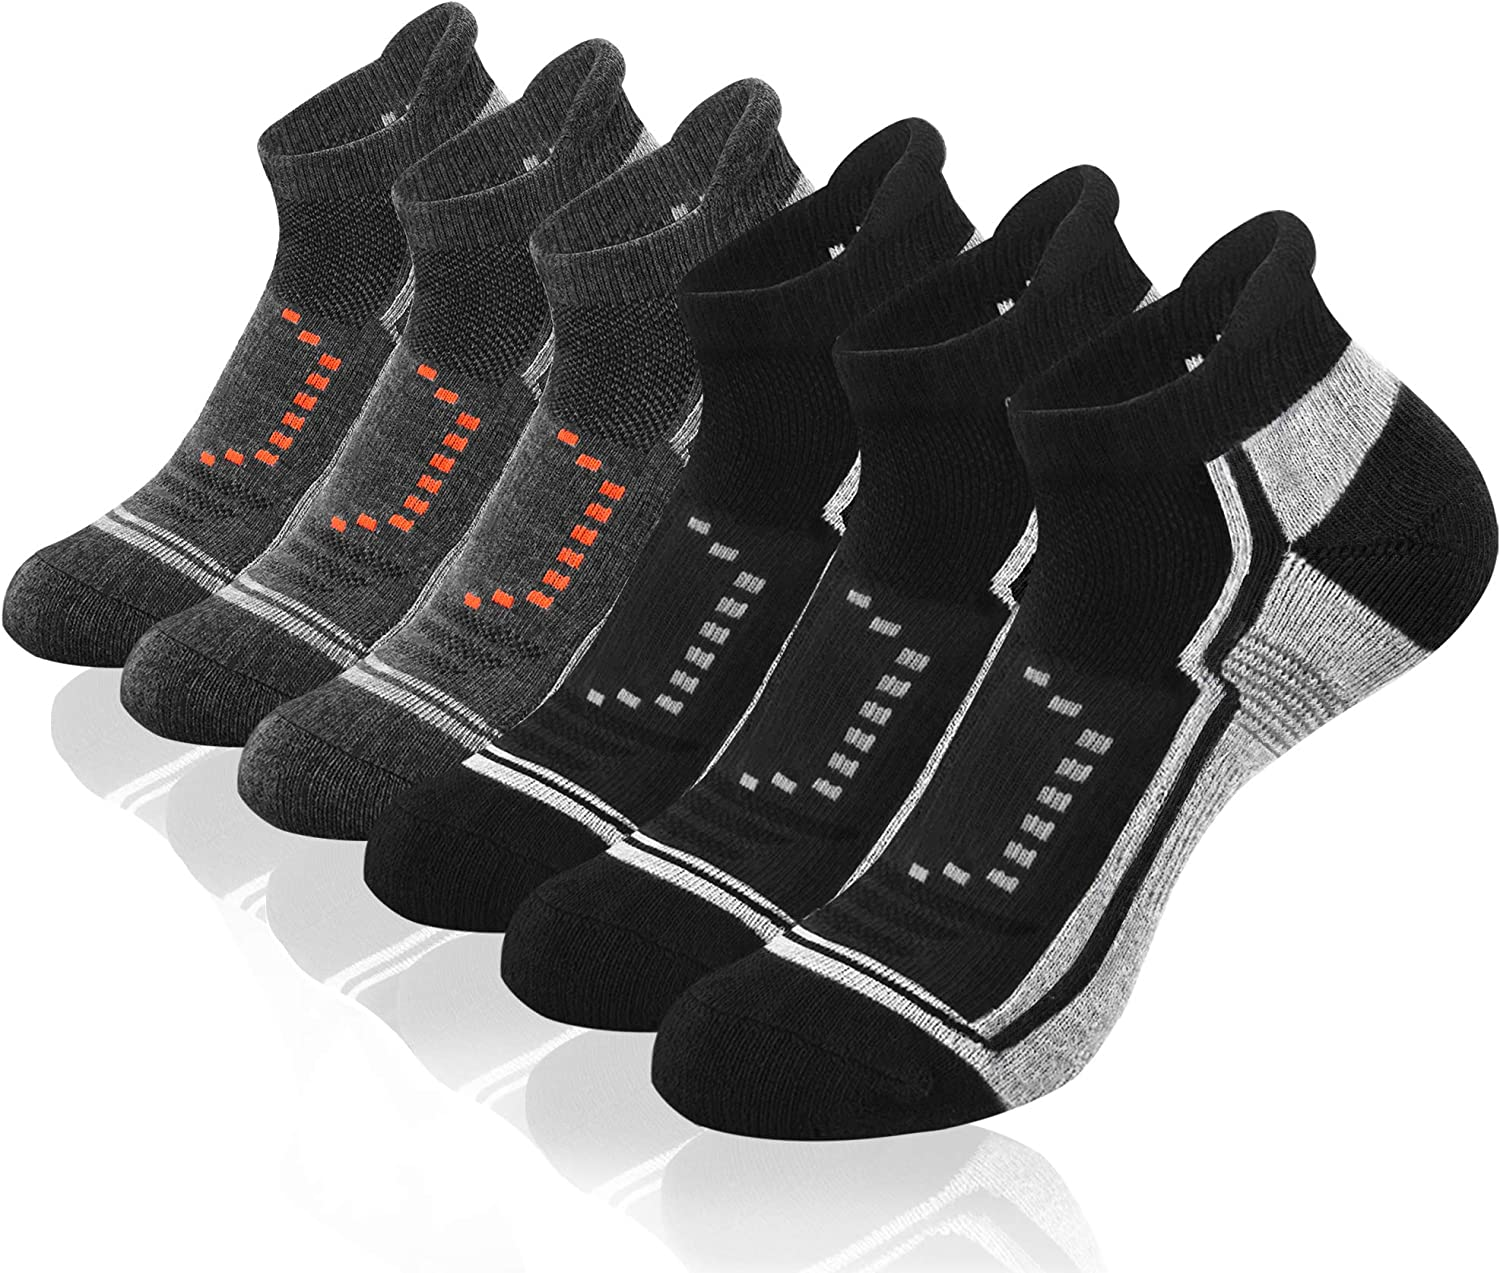 9IUOOM Men's Athletic Ankle Performance Socks, Running Sports Comfort Cushioned Breathable Low Cut Socks (6pack)